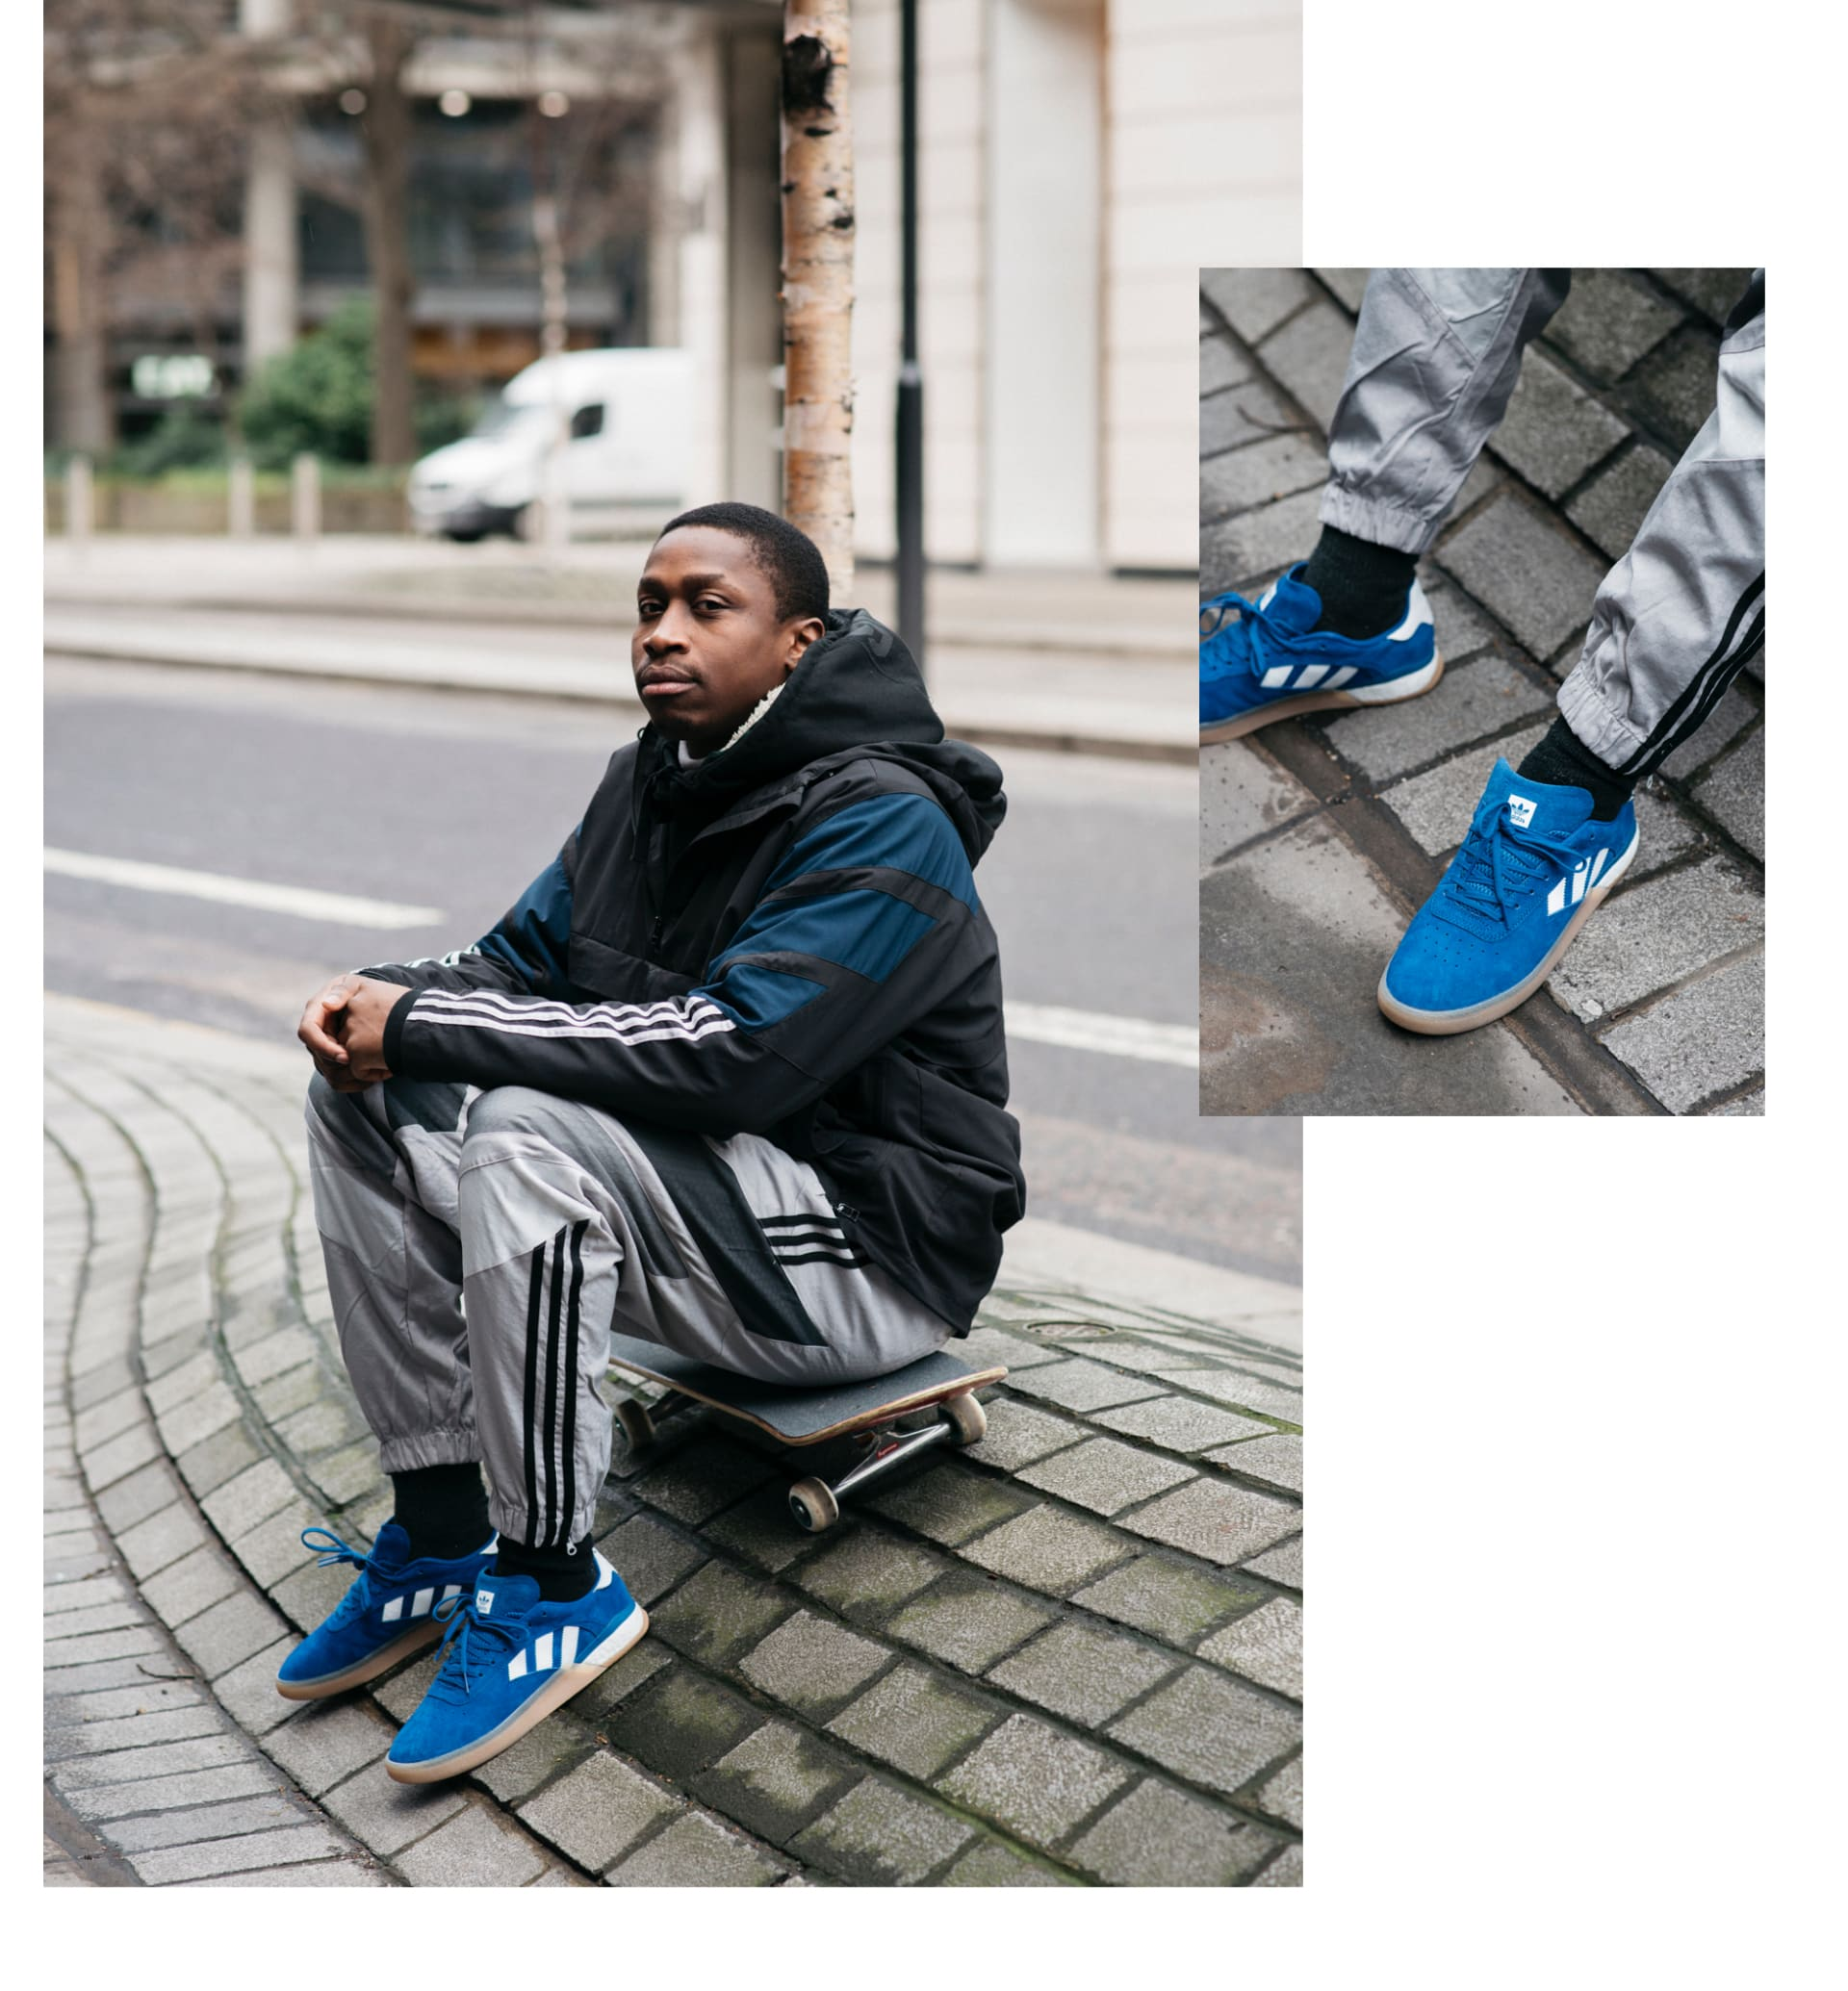 76e442e1440d adidas Skateboarding 3ST.004 in the City